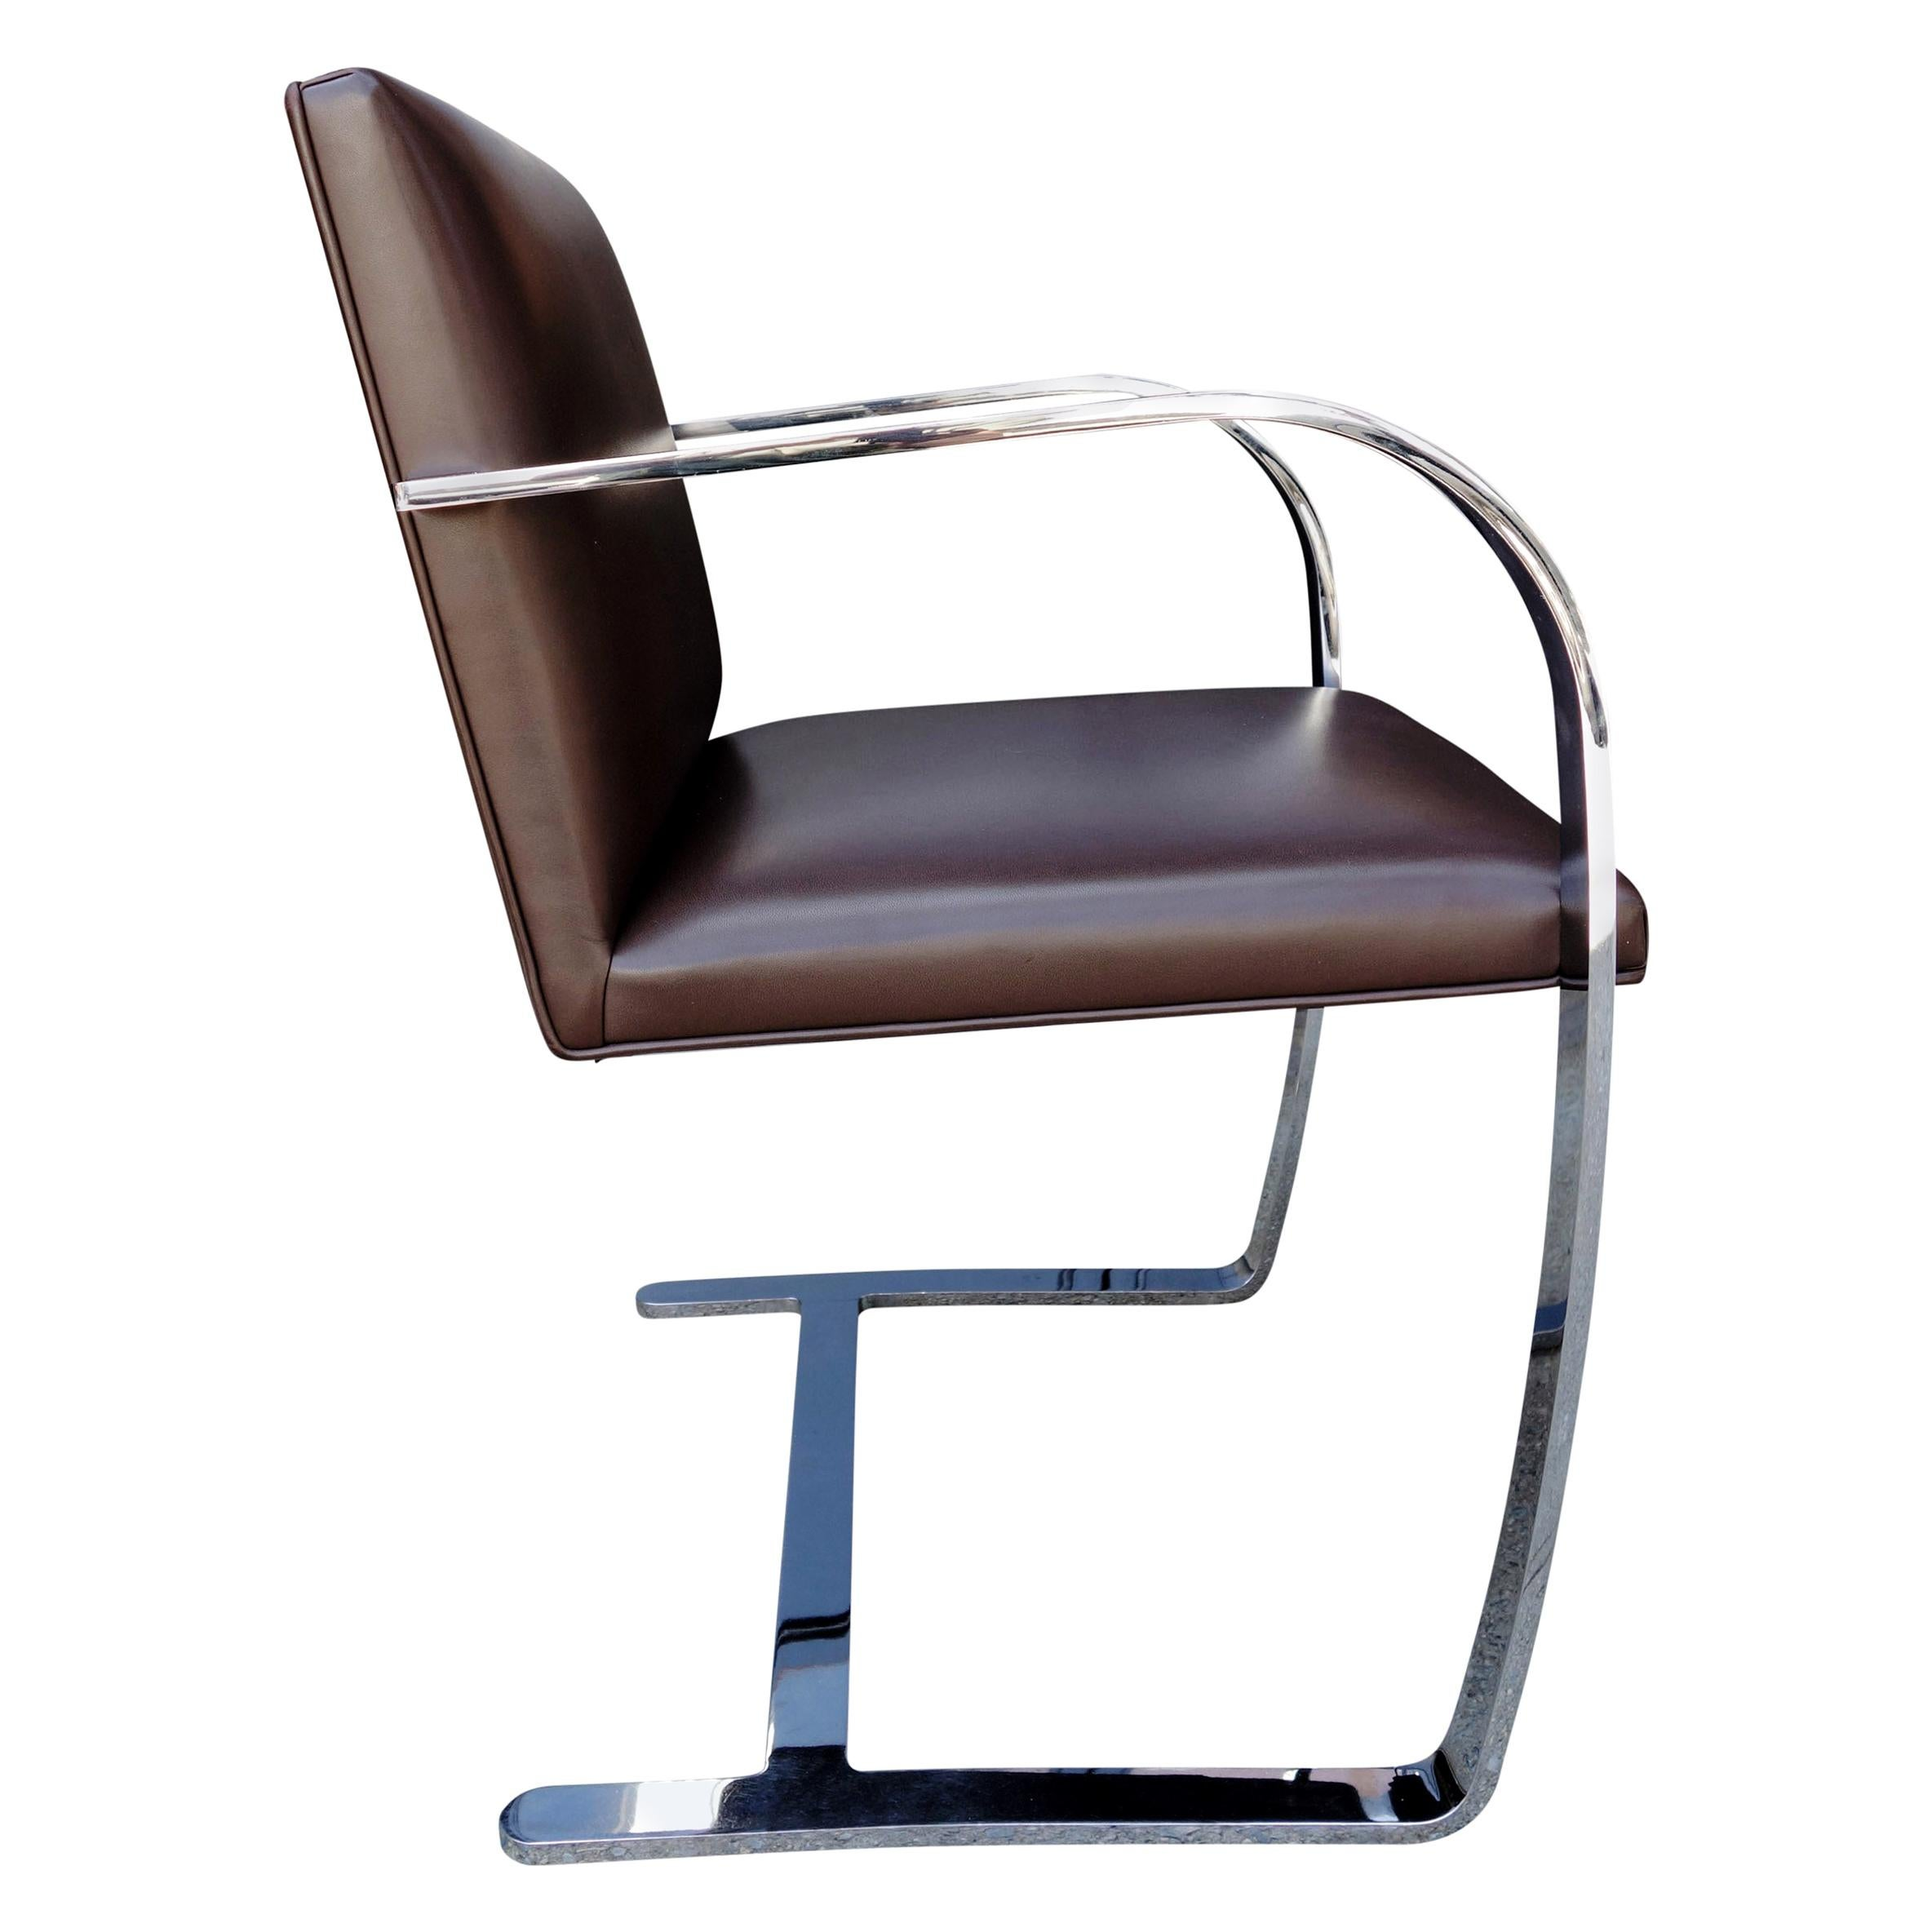 Authentic Midcentury Brno Armchairs for Knoll in Brown Leather